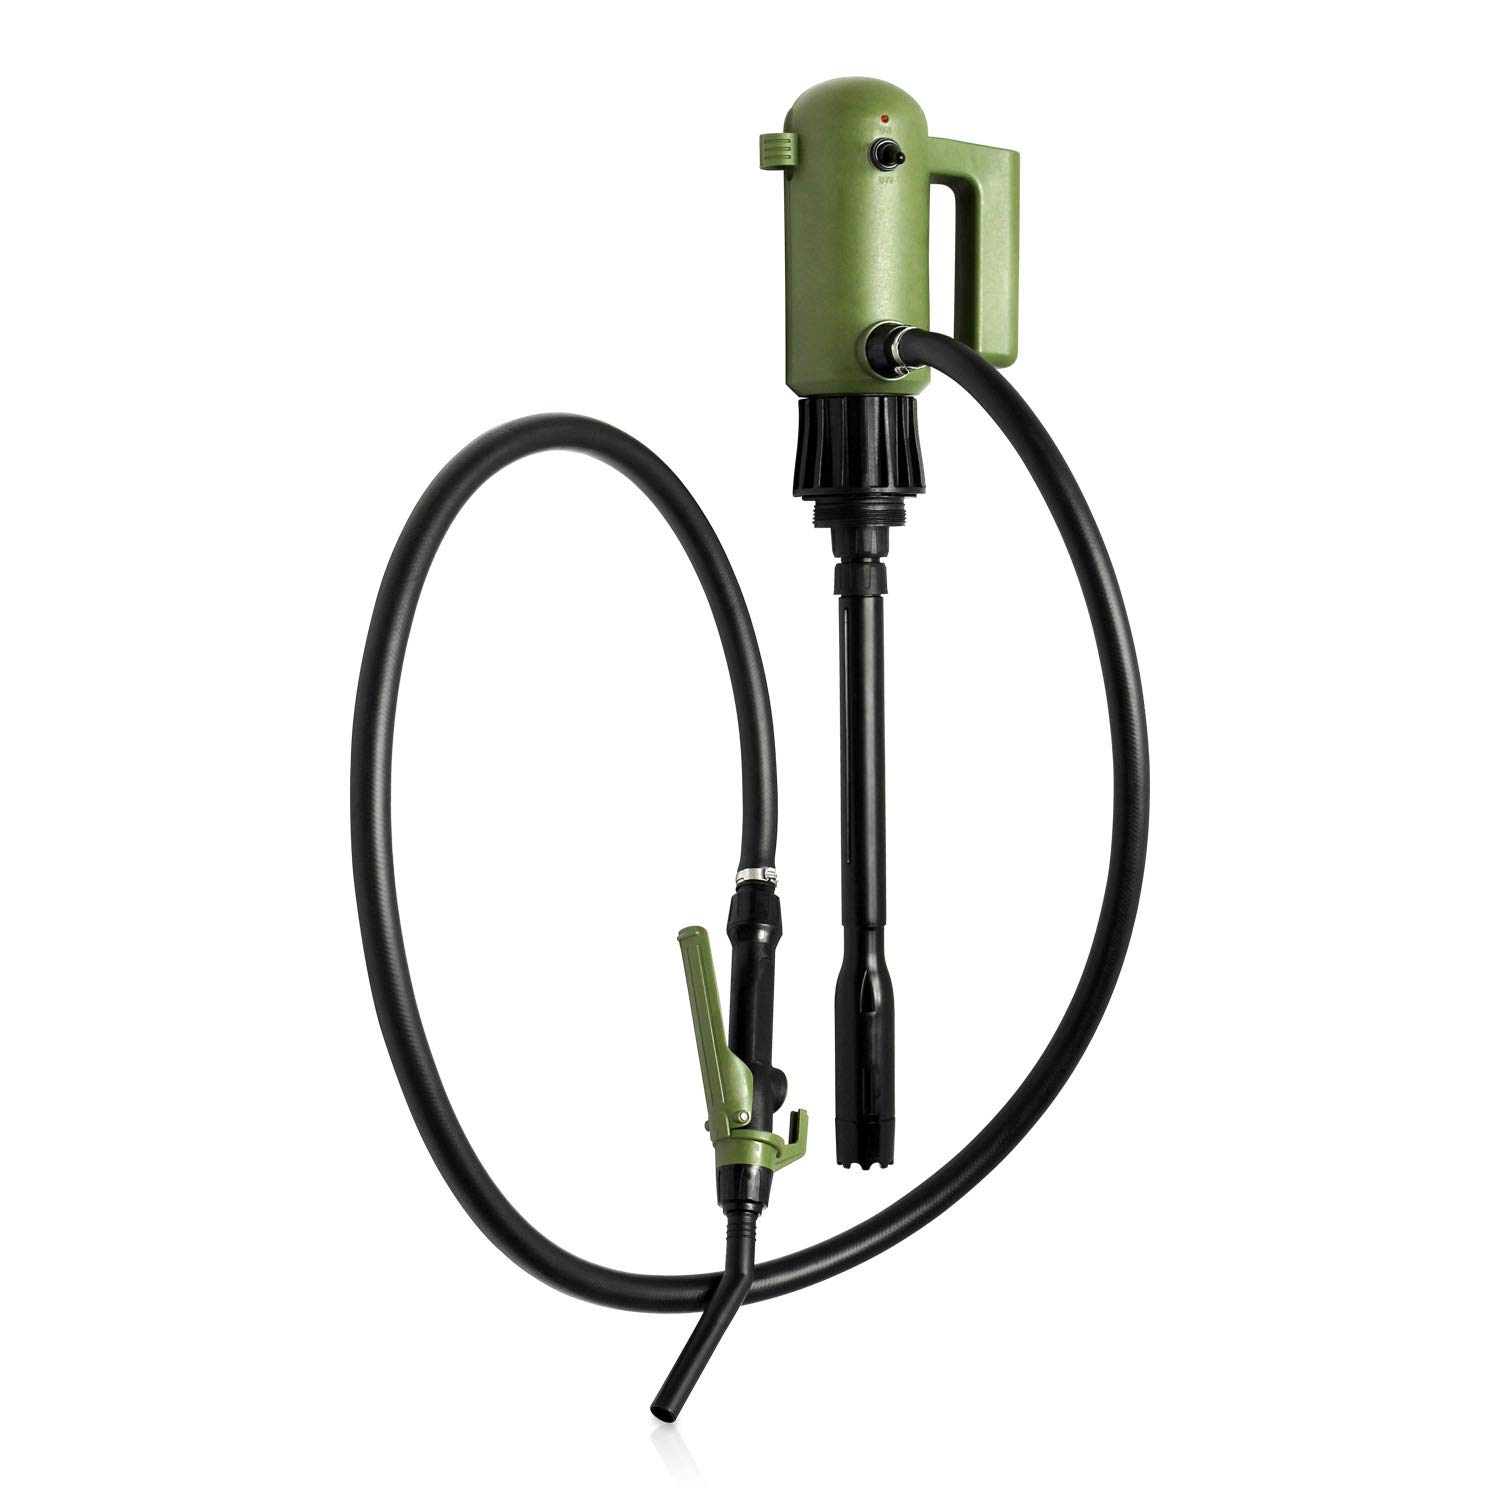 1st Introducing Electric Pail Pump with Lid (fit Most Pail Container) for Water Gasoline Diesel DEF ADBlue w/ 74 inch Long Heavy Duty Hose up to 4.5 GPM by TERA PUMP (Image #1)